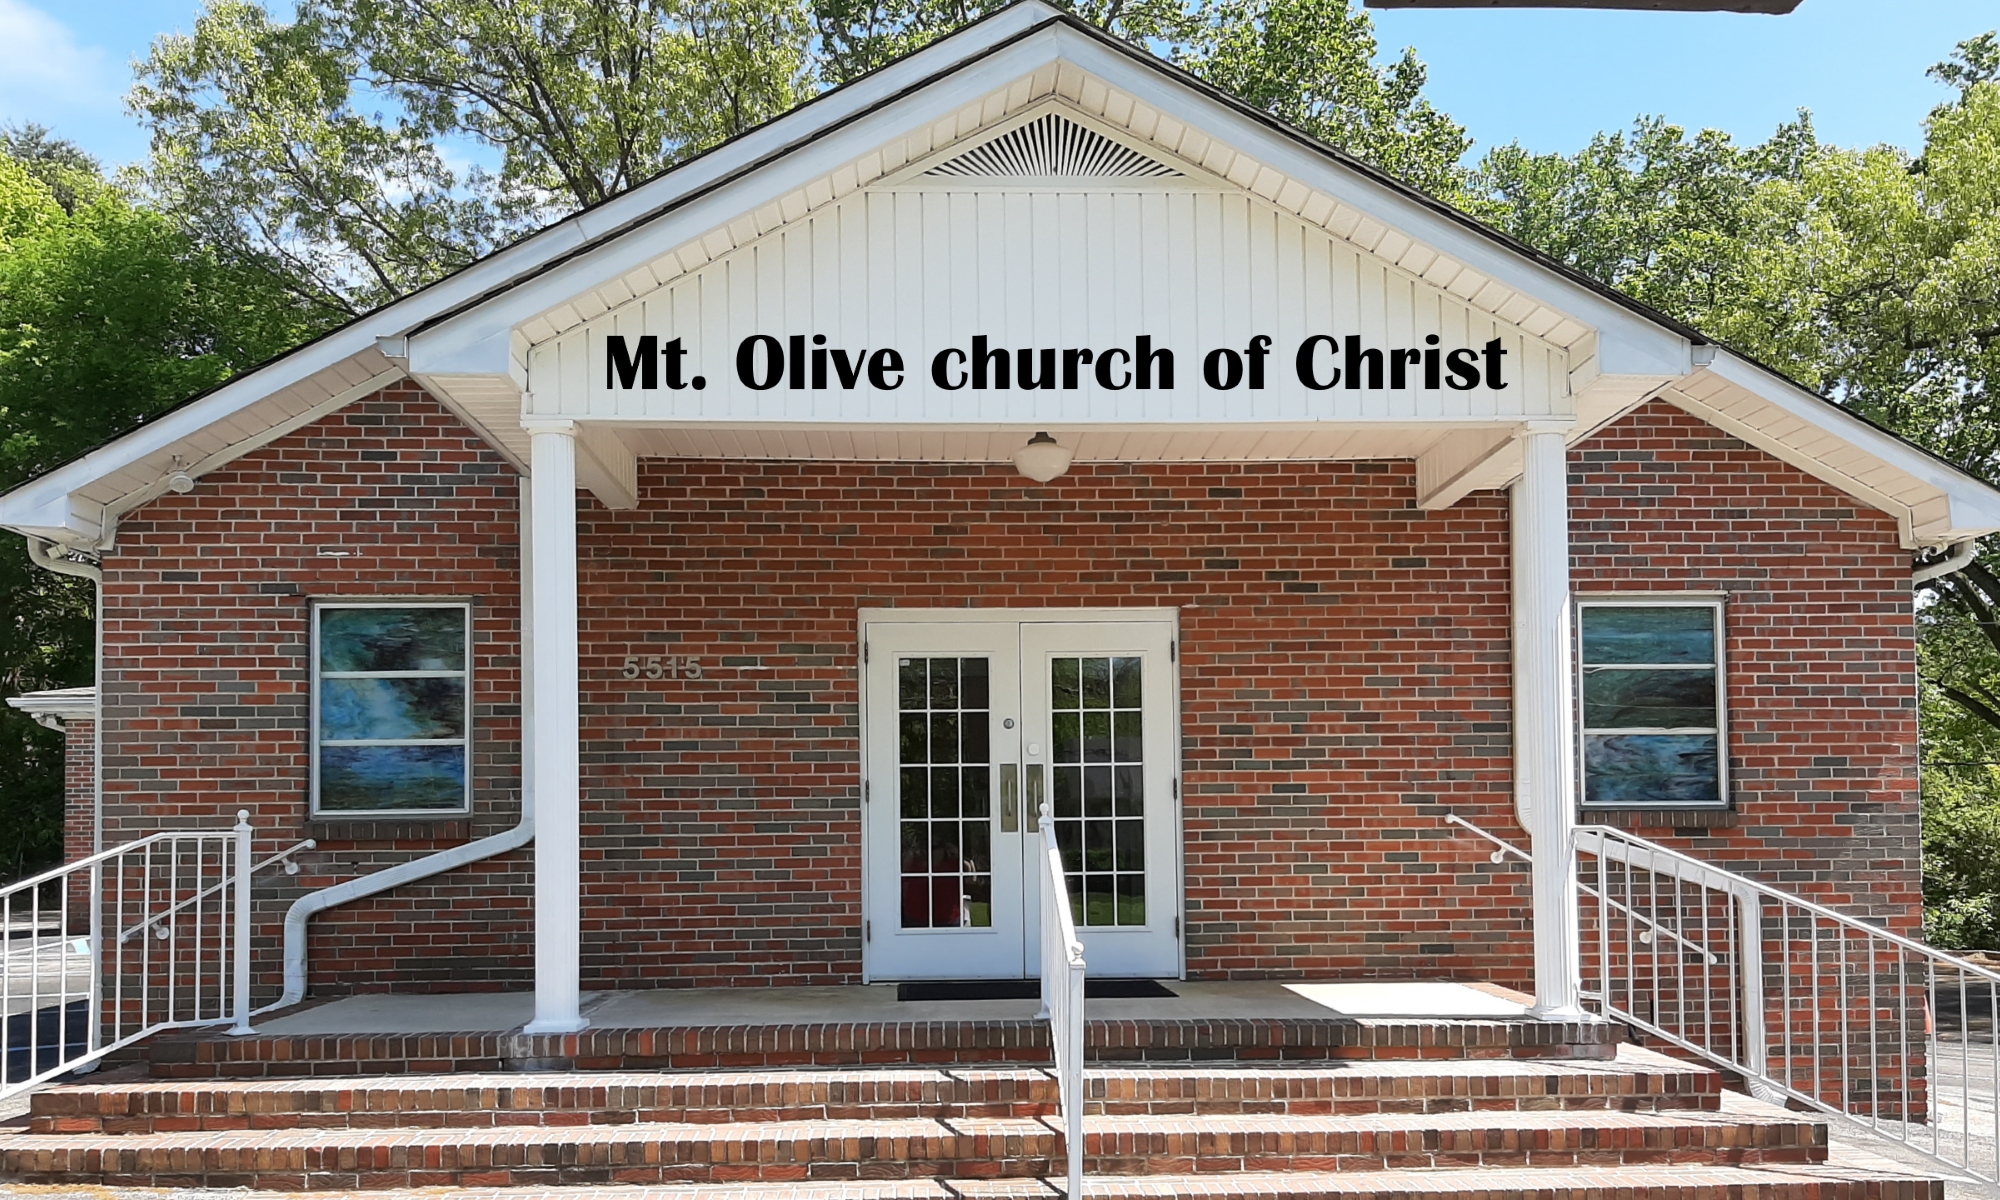 Mt. Olive church of Christ